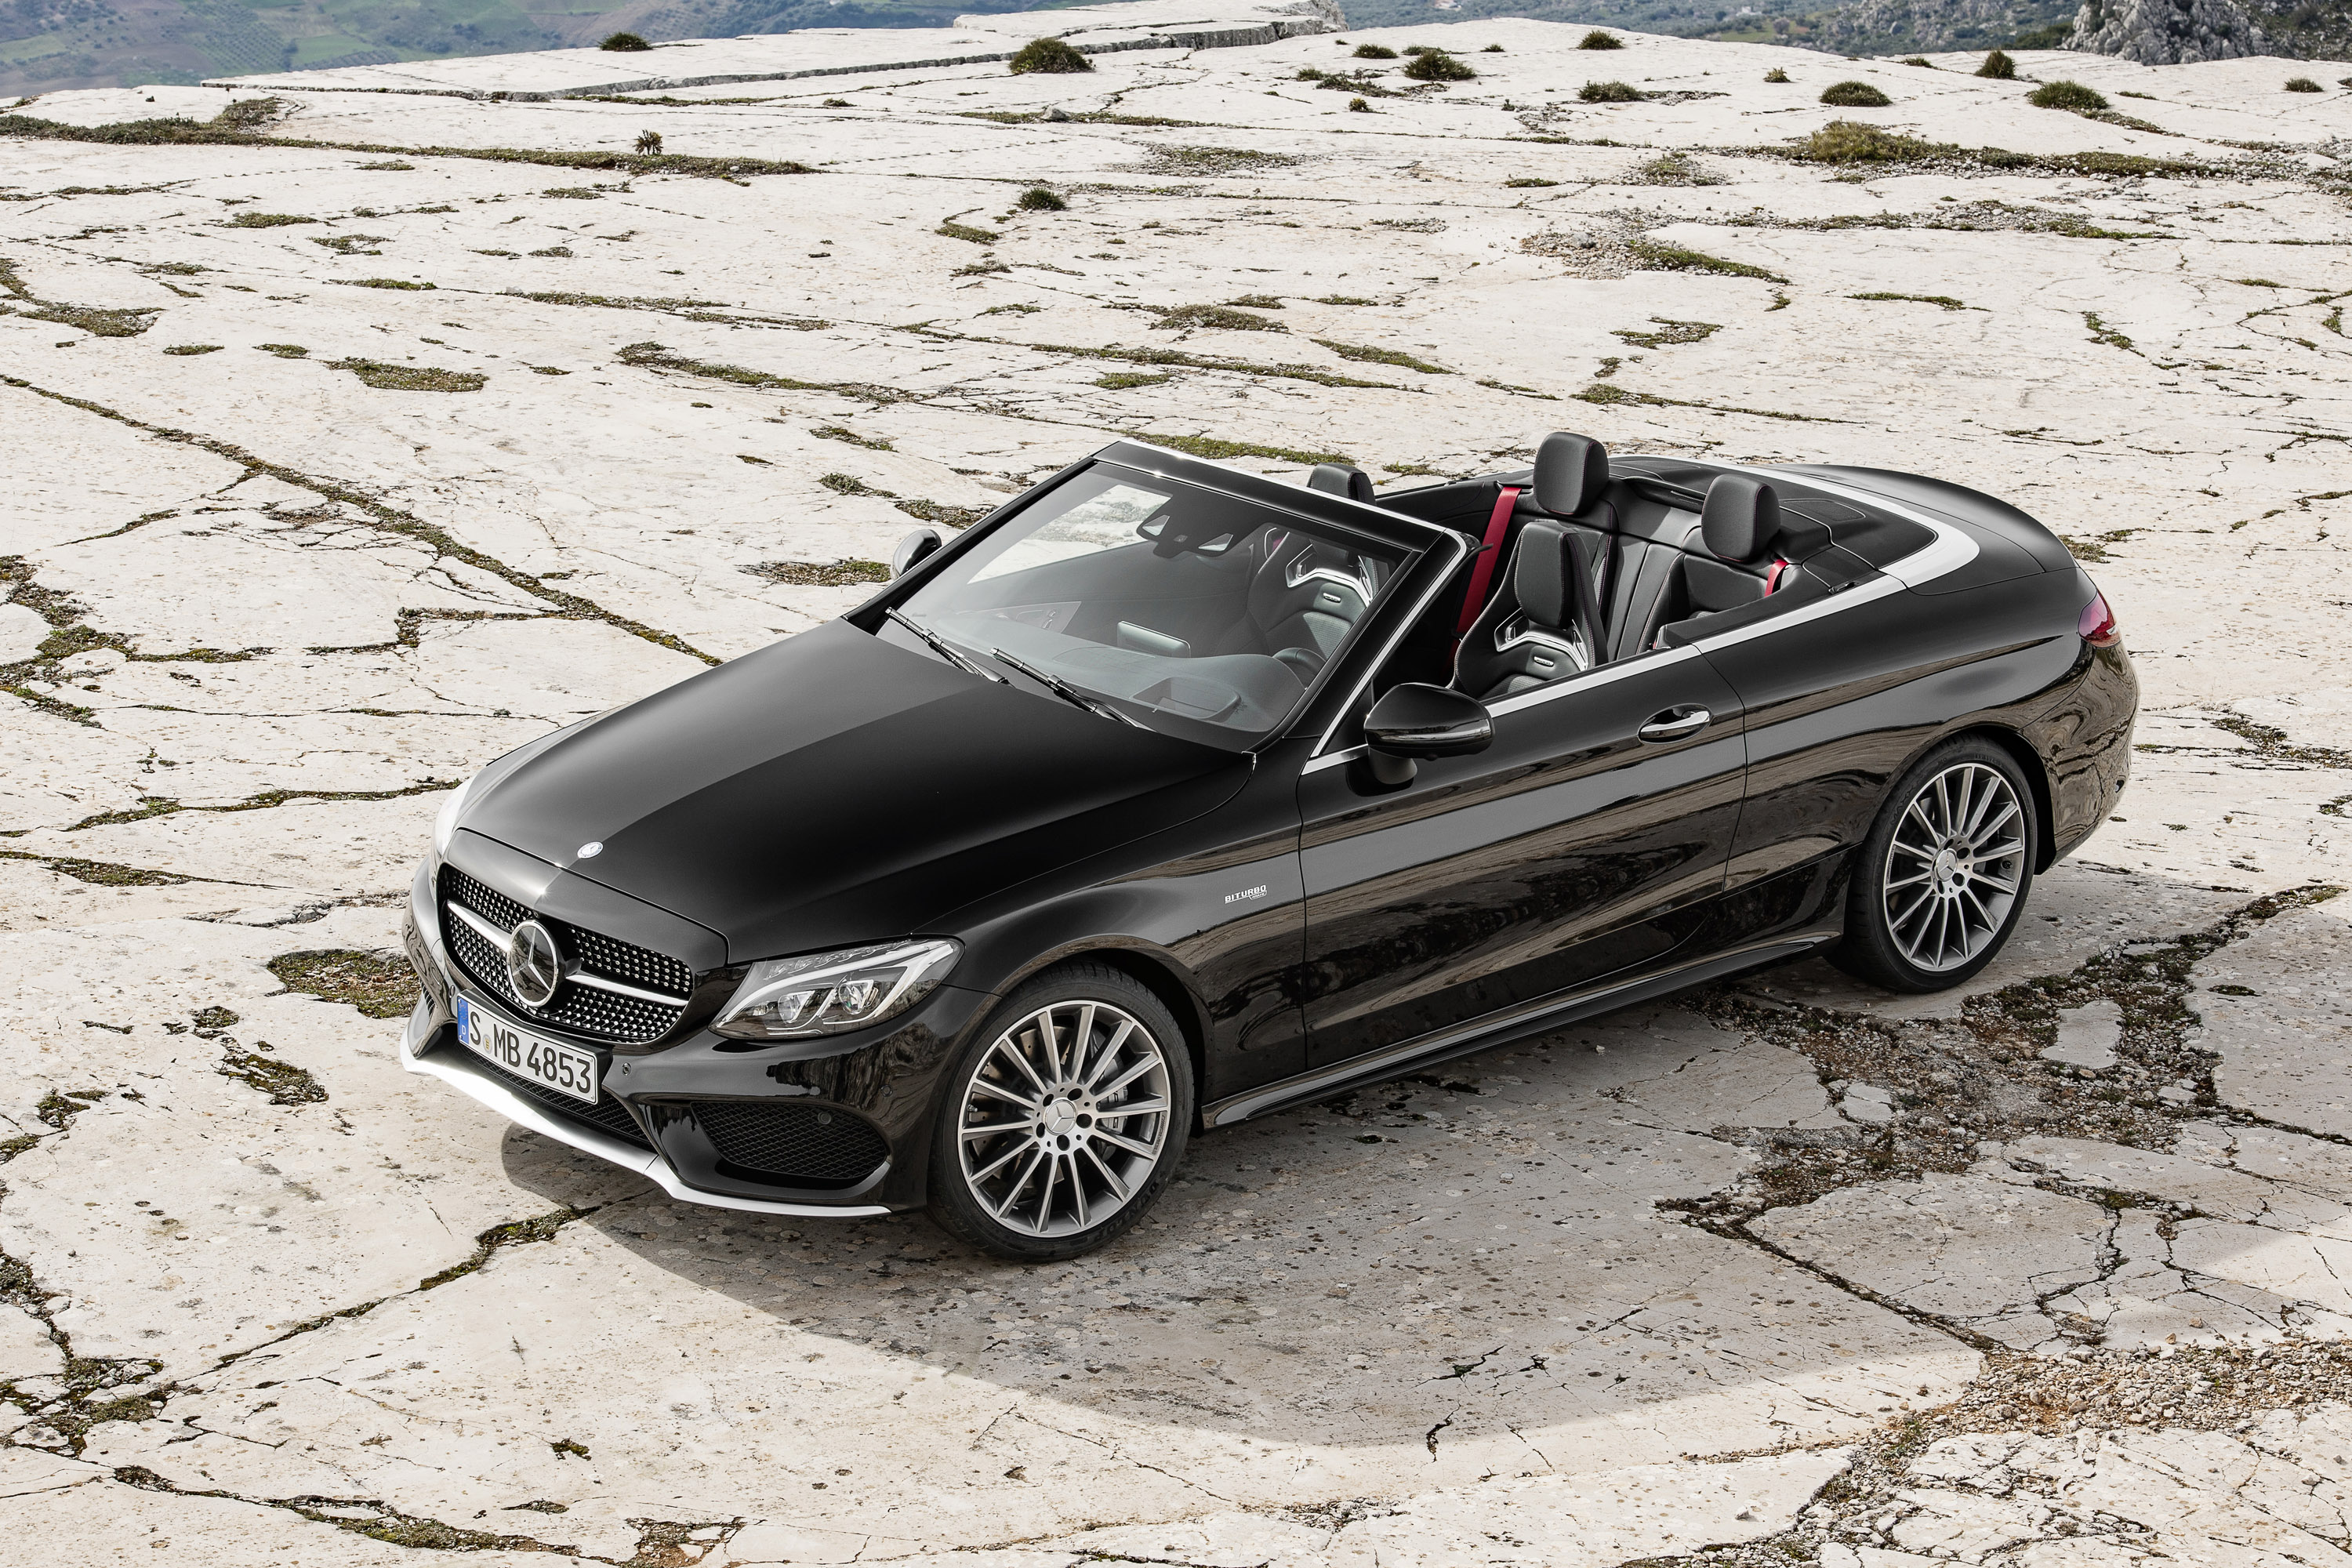 Mercedes-AMG C43 4MATIC Cabriolet photo #1